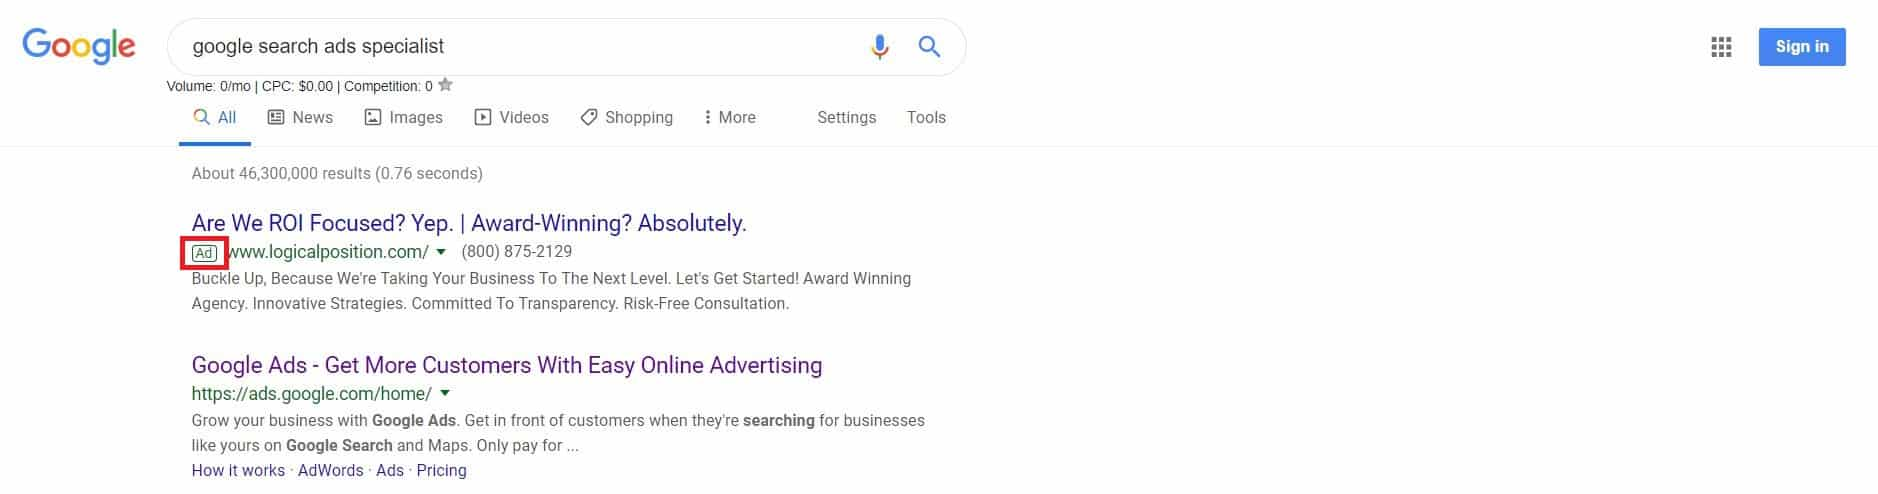 google-ads-specialist